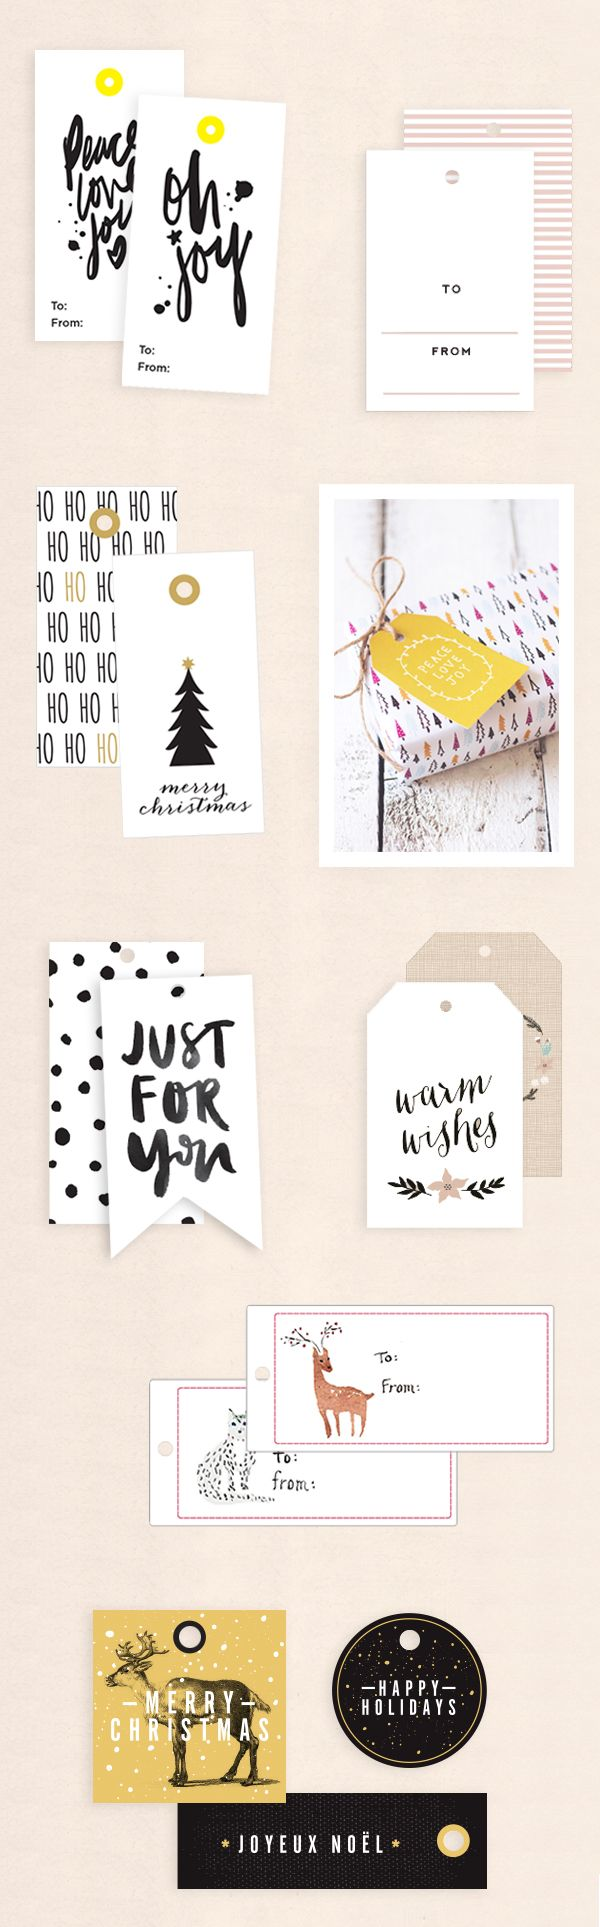 Free Printable Holiday Gift Tags Roundup from Oh The Lovely Things